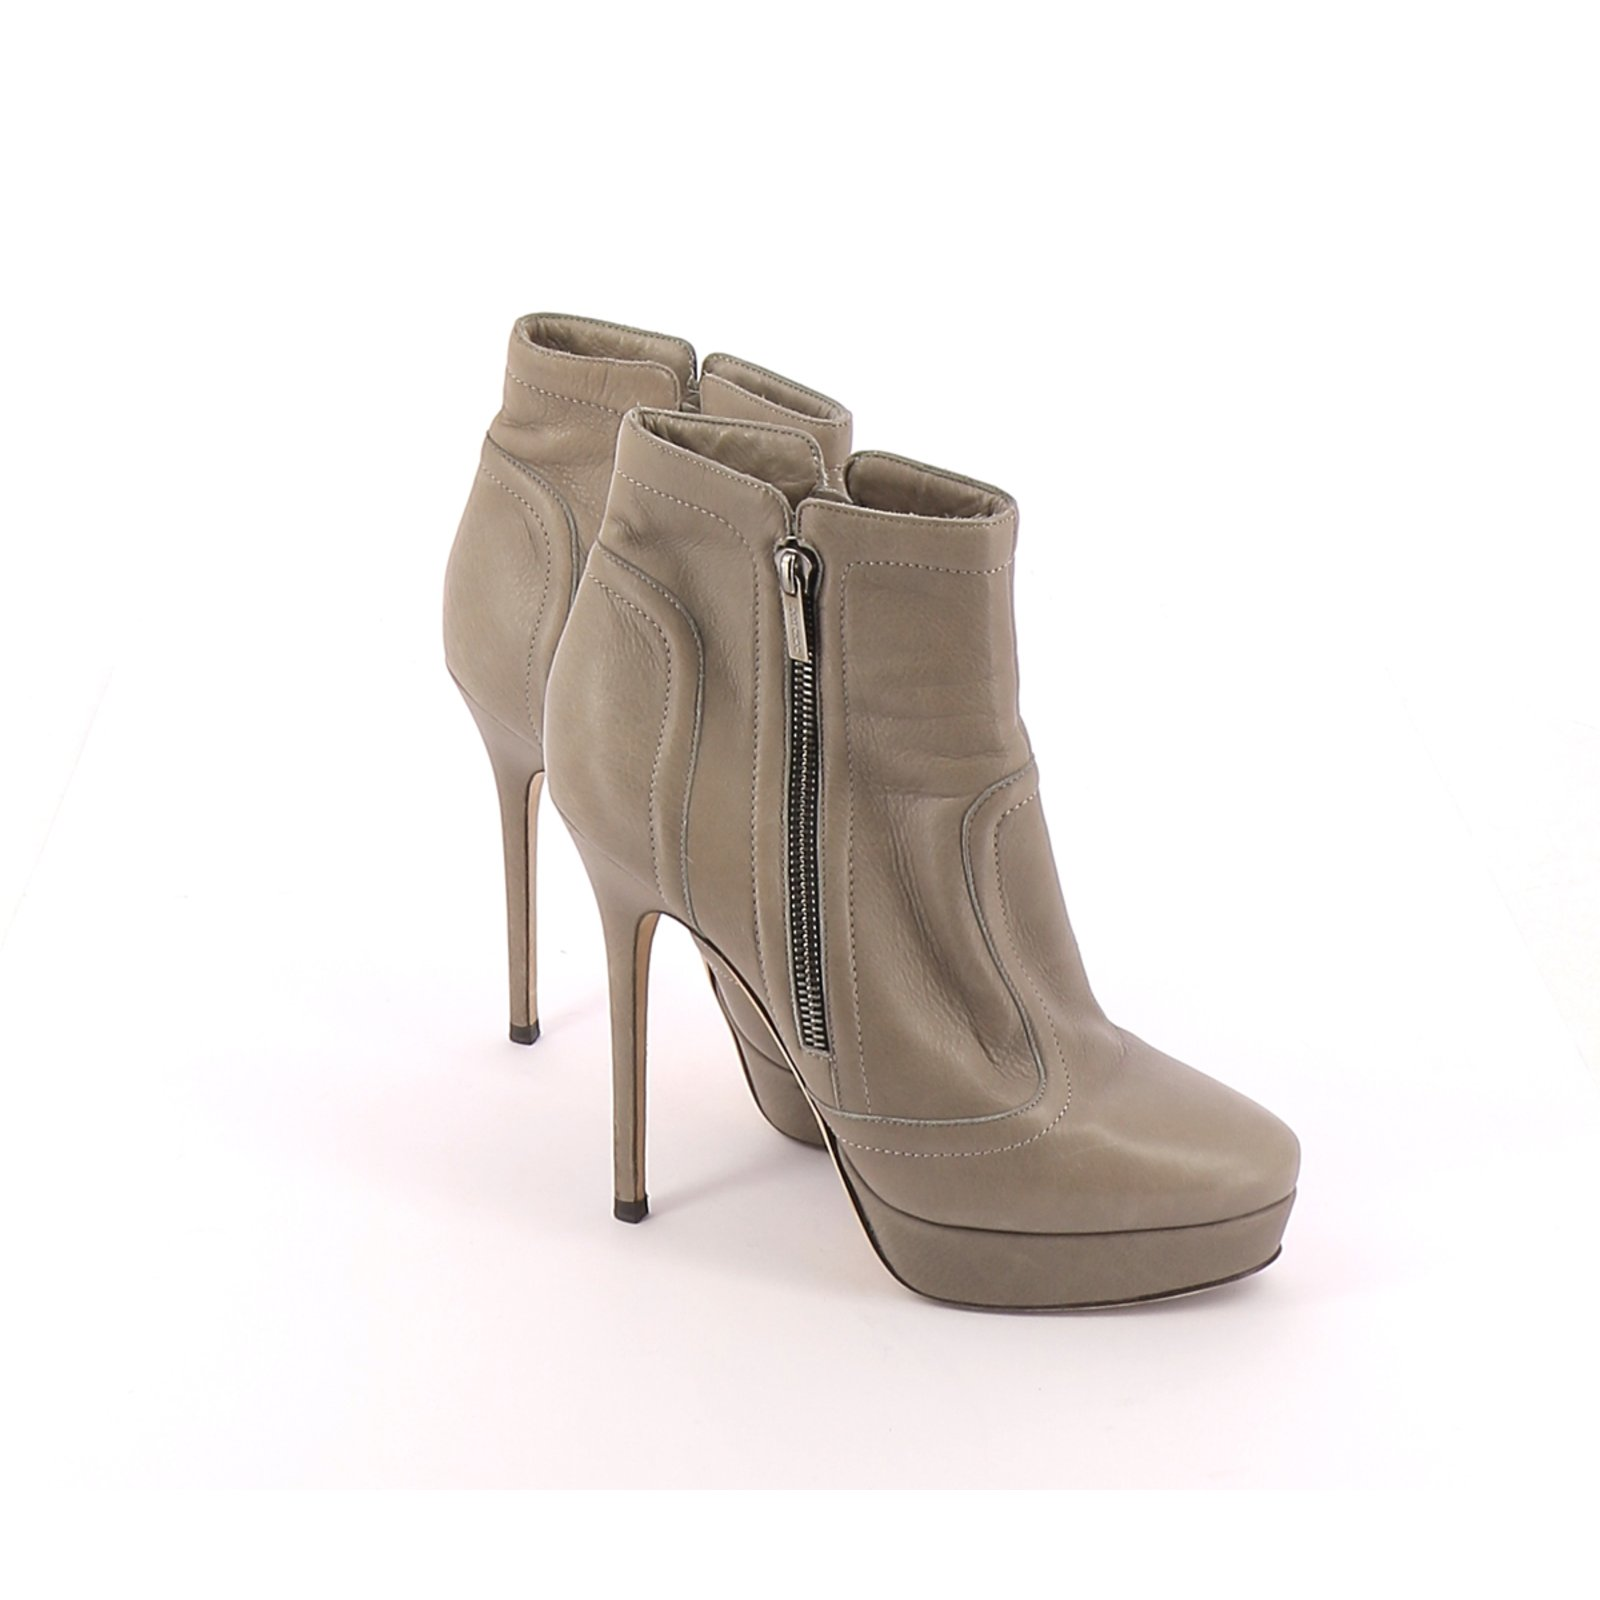 Low Boots Ankle Boots Leather Grey ref